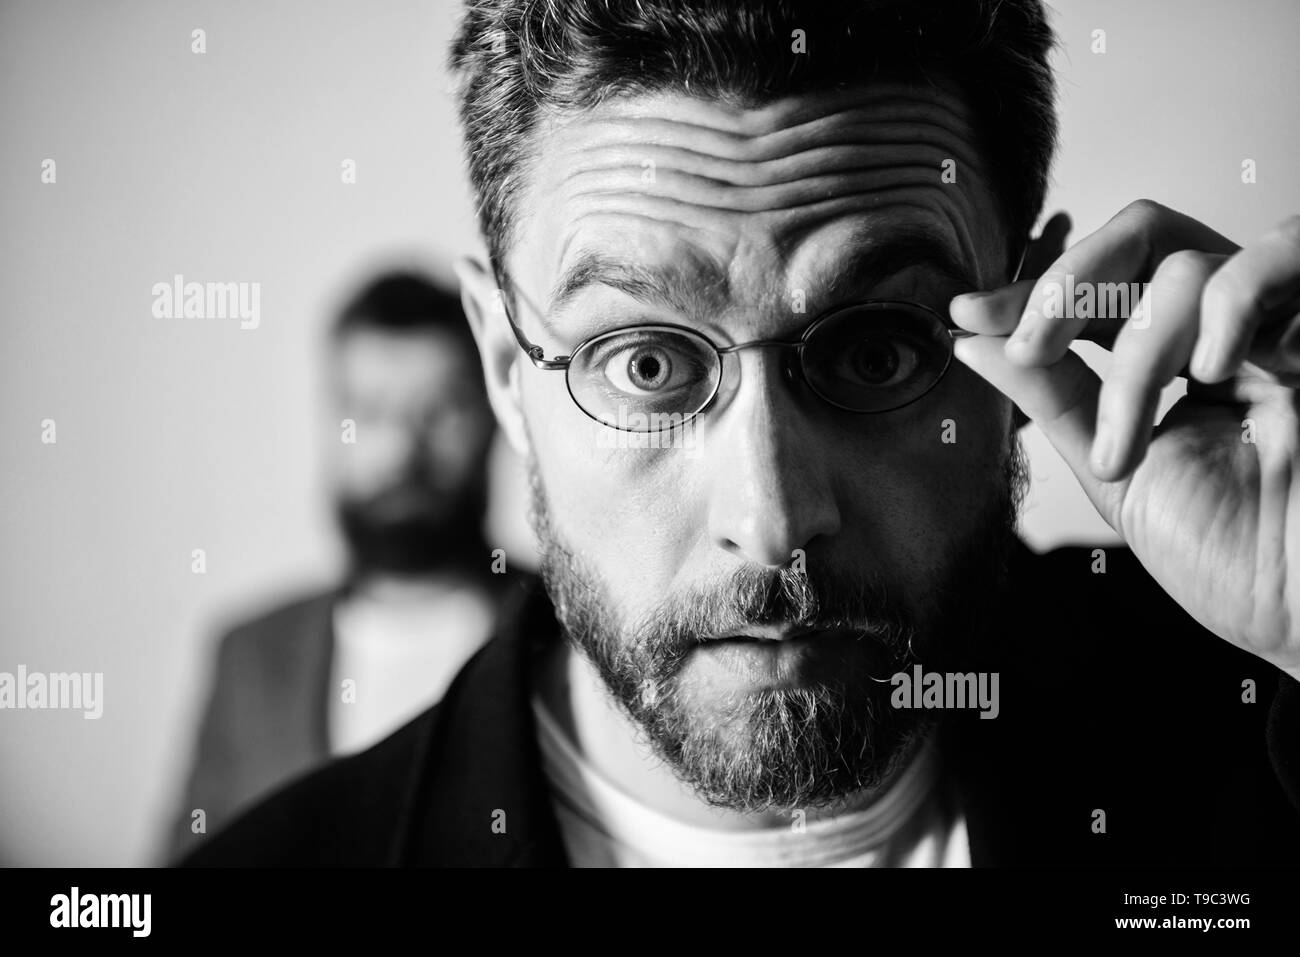 Now i see everything. Picky smart inspector. Man handsome bearded guy wear eyeglasses. Eye health and sight. Optics and vision concept. Smart glance. Accessory for smart appearance. Attentive glance. - Stock Image